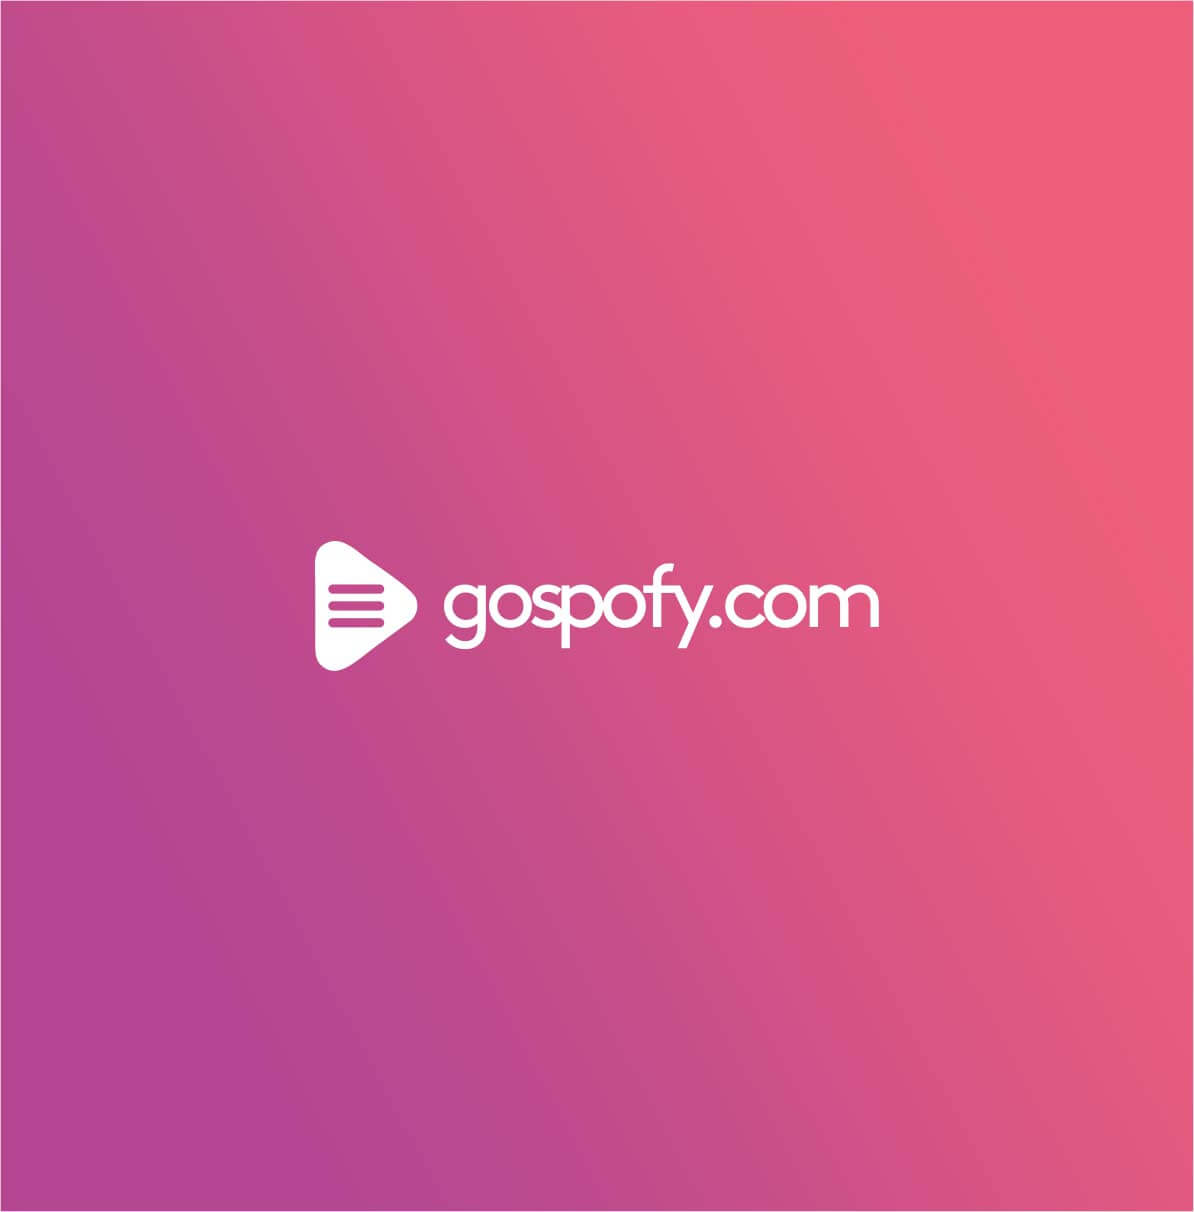 Gospofy Logo Design - Website Exclusive To Gospel Music